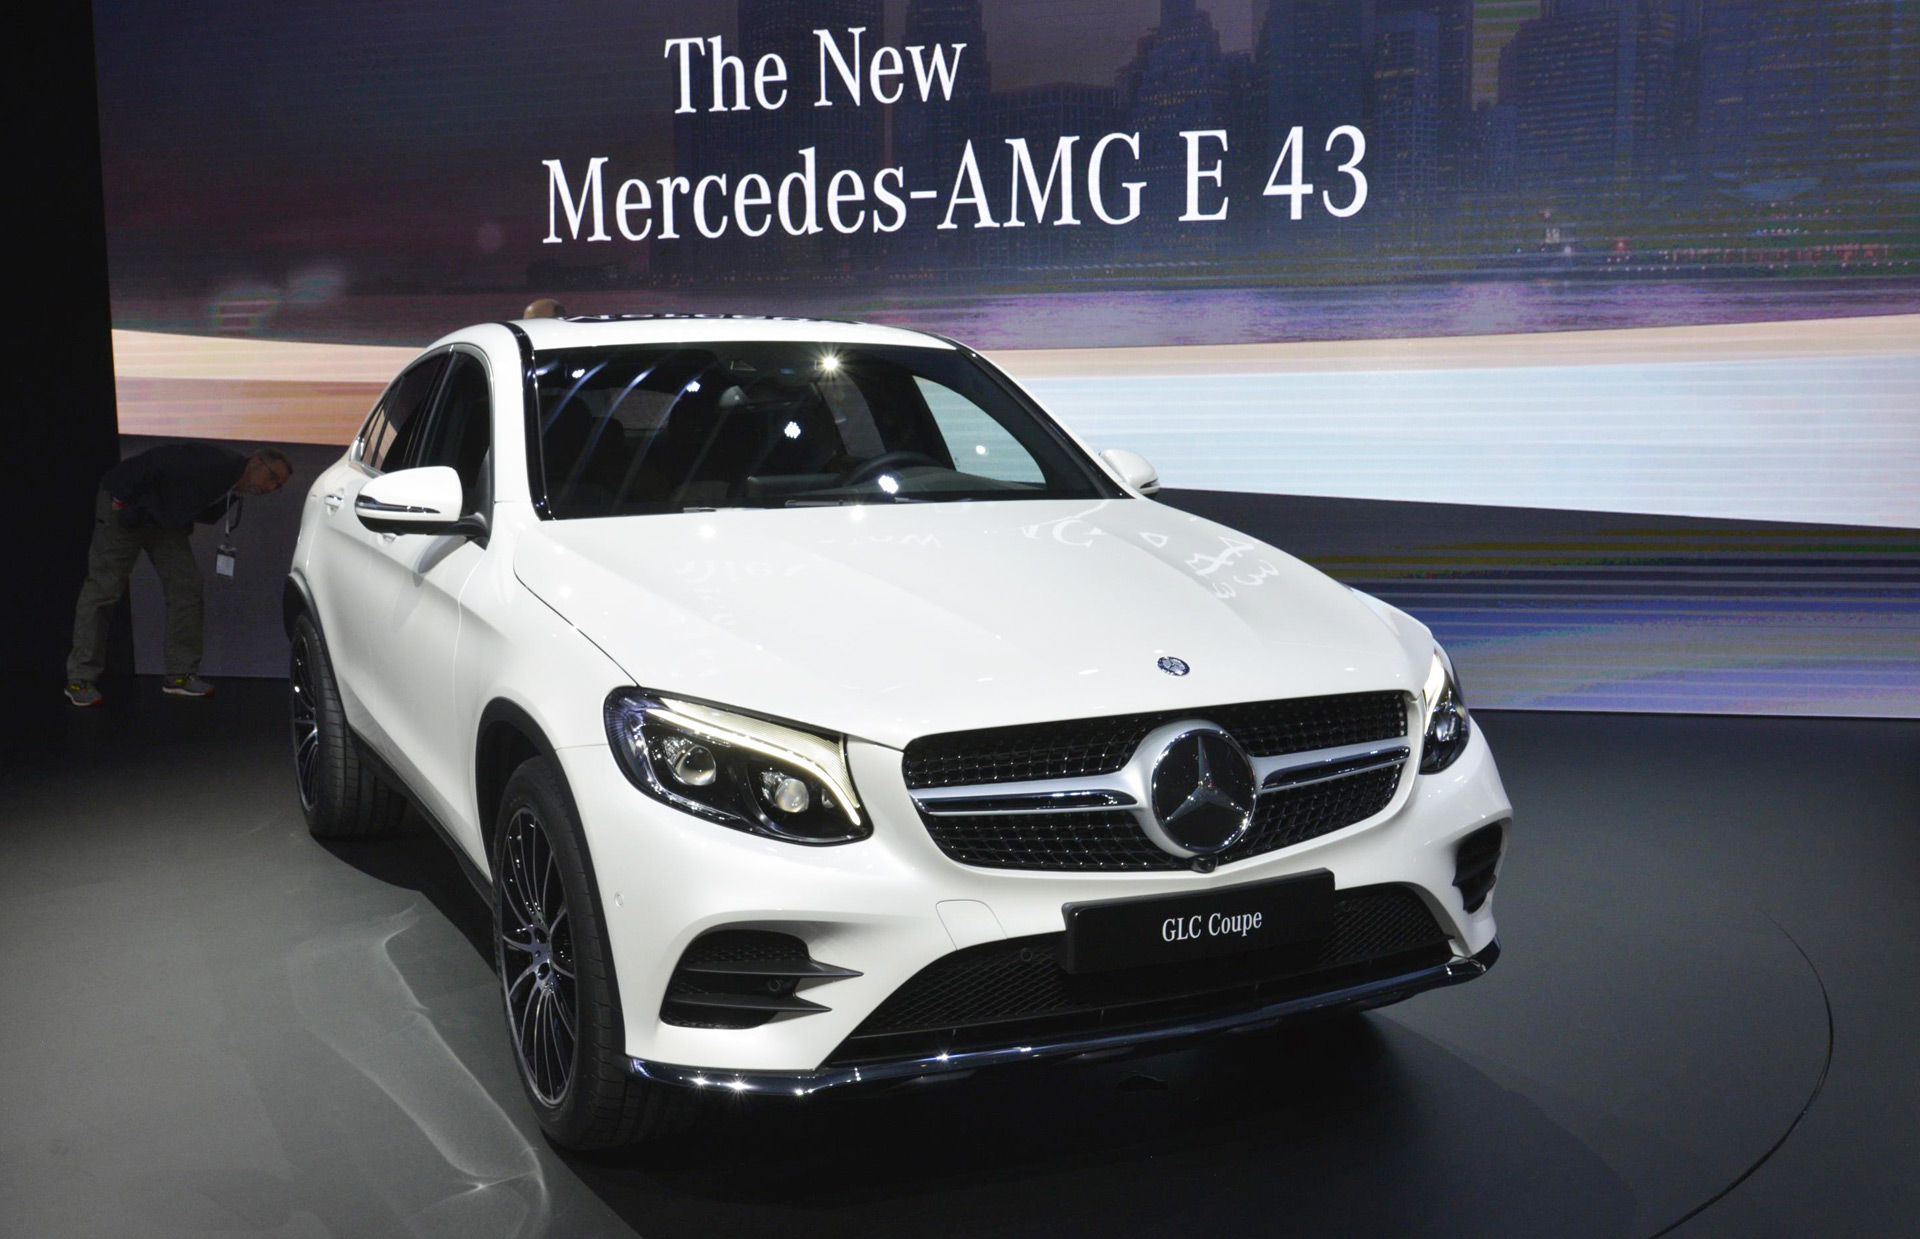 2017 mercedes benz glc coupe revealed live photos and video - 2016 Mercedes Glc Coupe